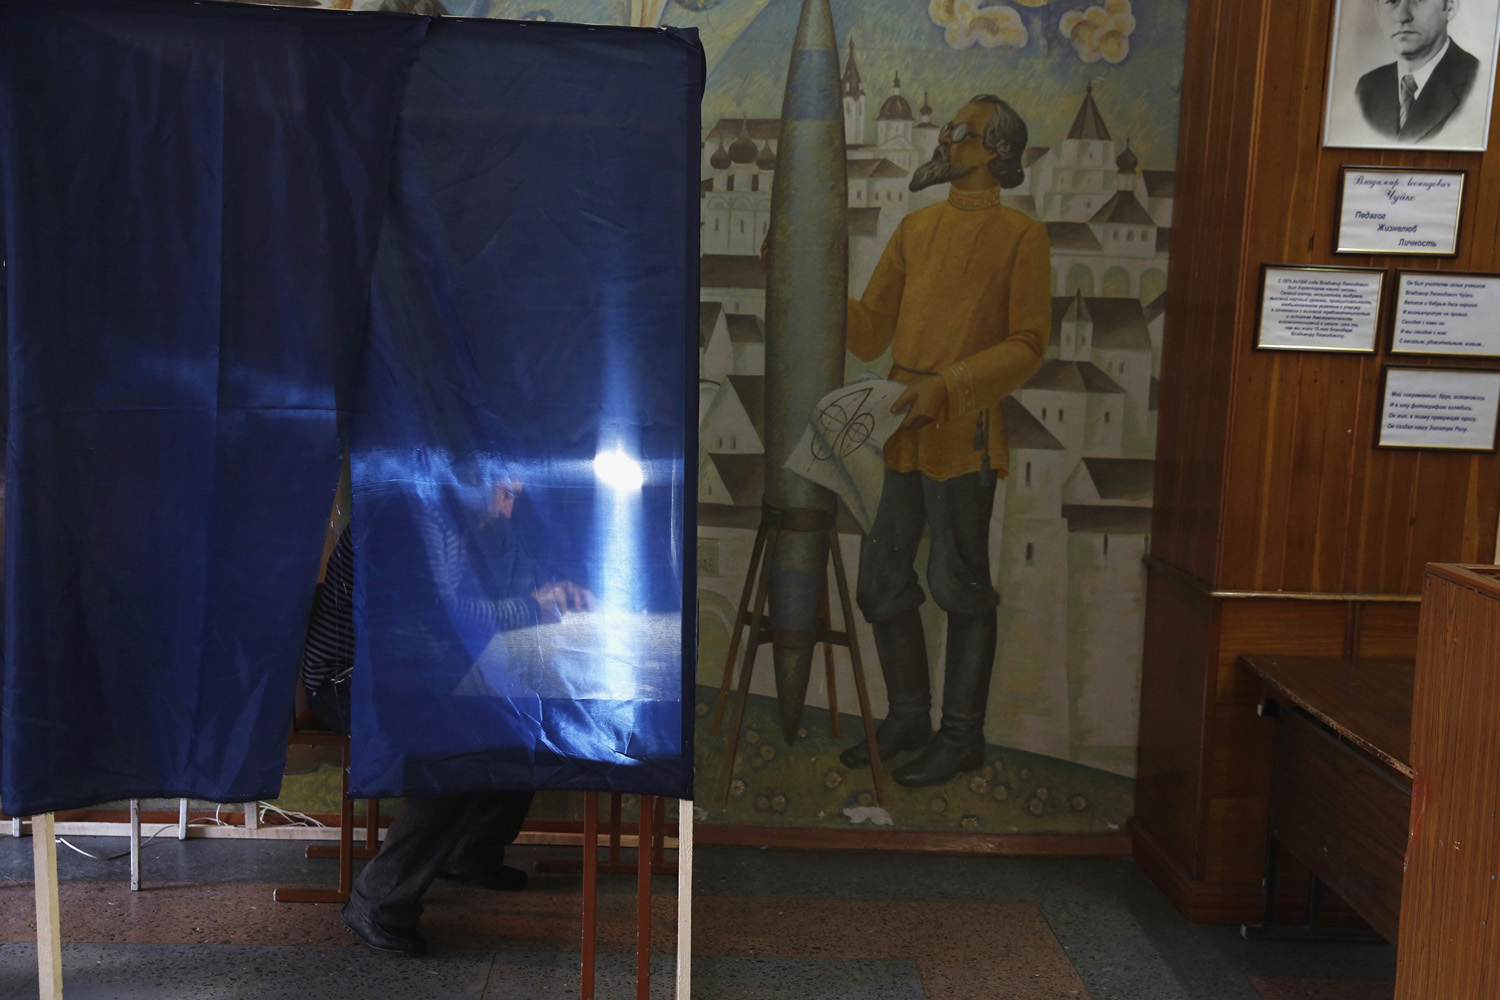 May 11, 2014. A man completes a form for the referendum at a polling station in the eastern Ukrainian city of Donetsk.